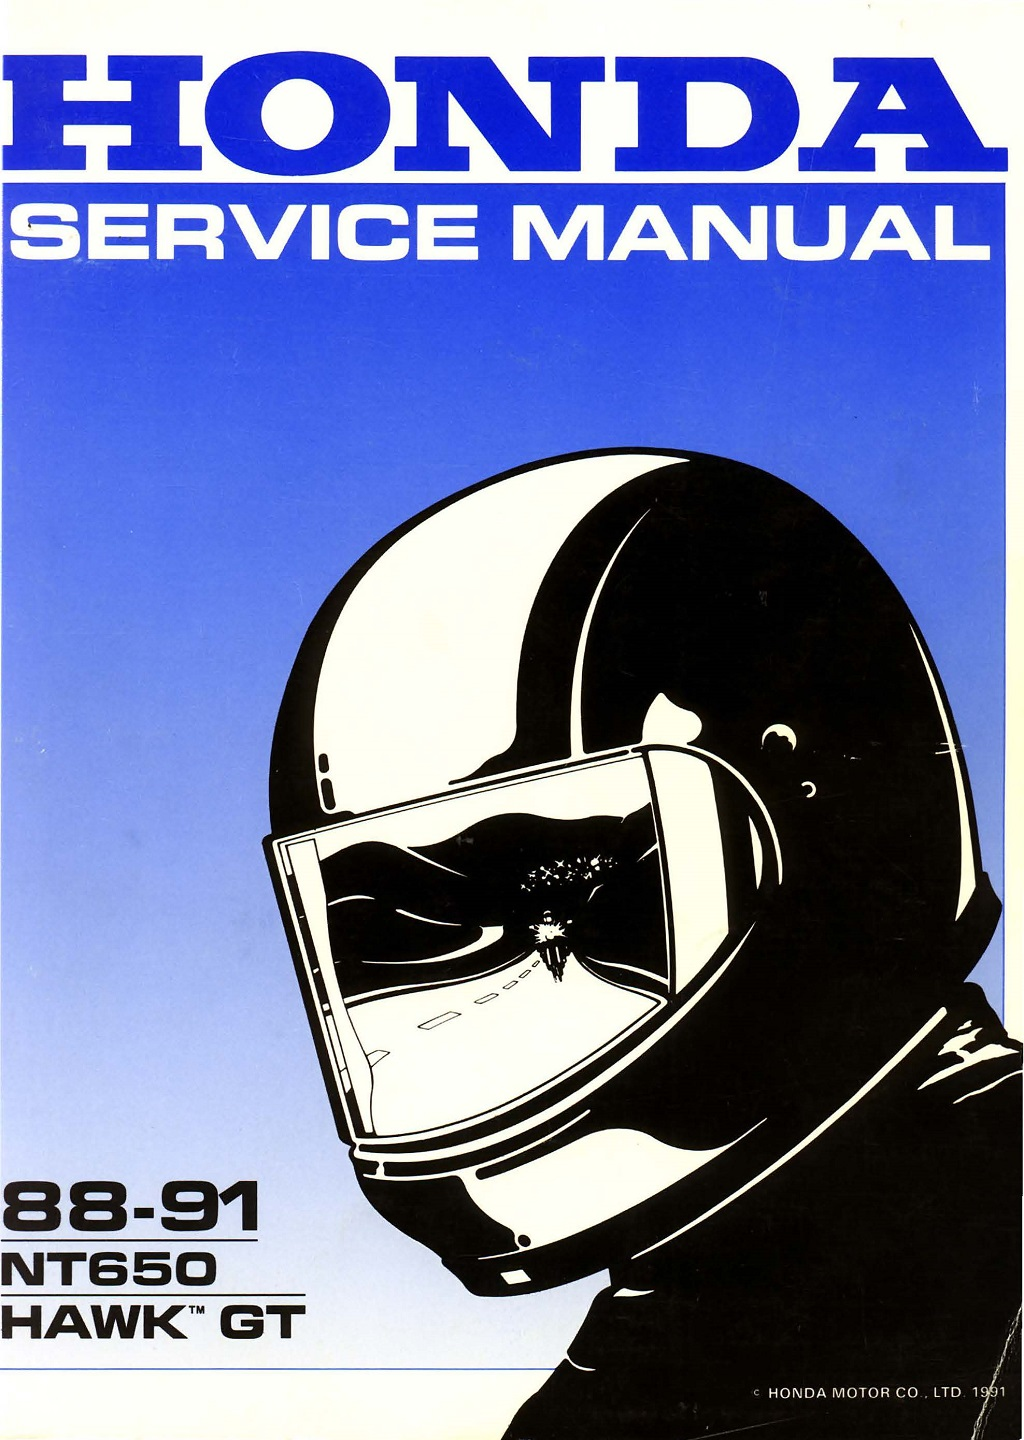 Workshop manual for Honda NT650 Hawk GT (1988-1991)